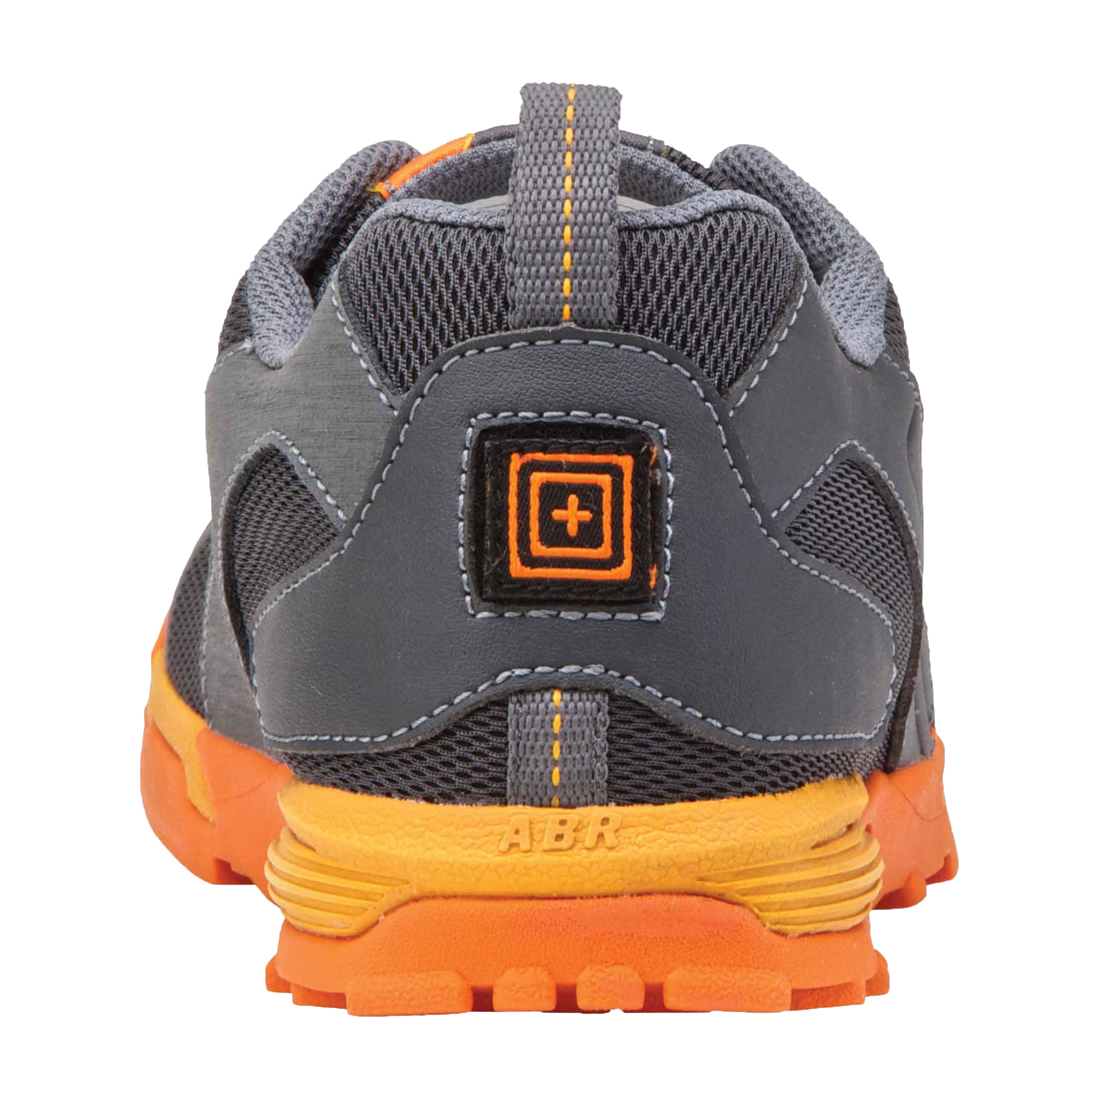 5-11-Recon-Trainer-Lightweight-Athletic-Running-Fitness-Shoes-16001 thumbnail 21